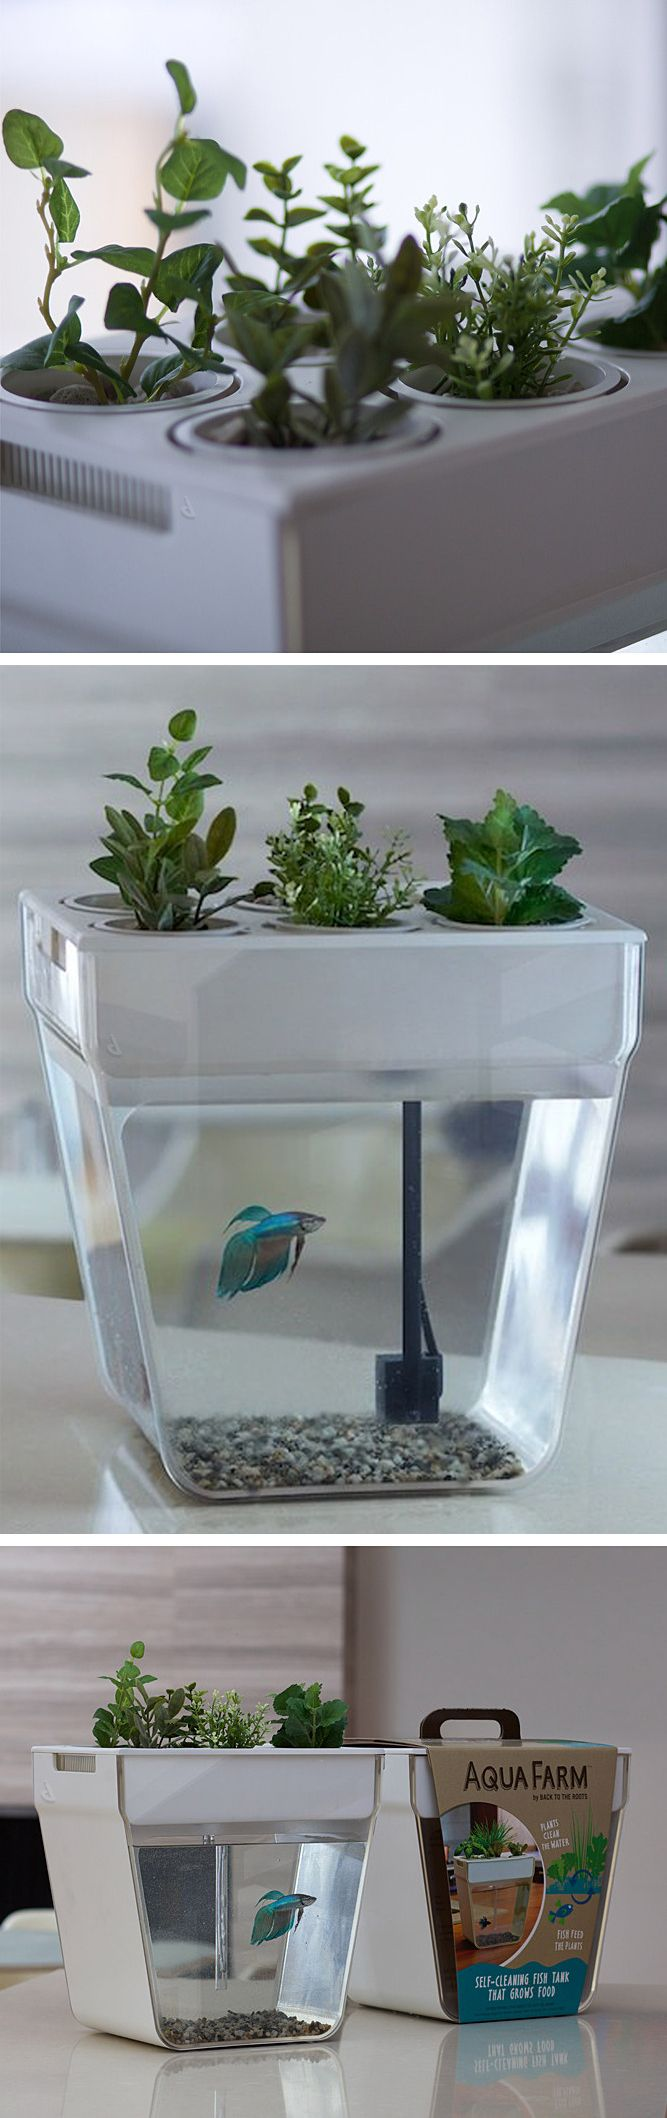 AquaFarm // a self cleaning + self feeding fish tank! #product_design